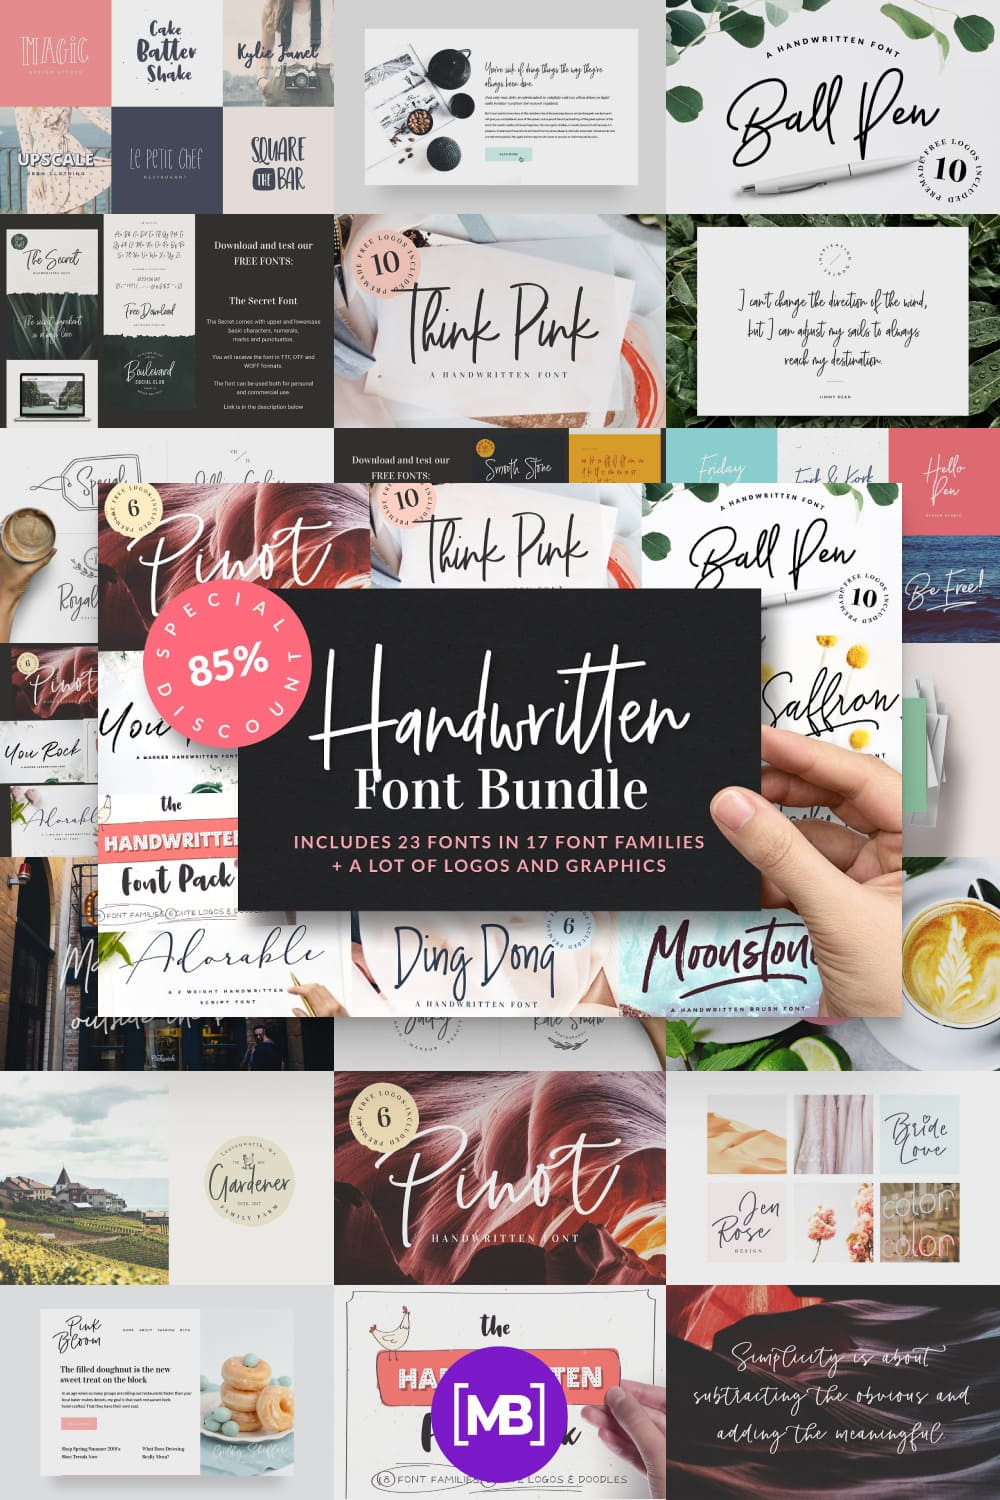 A creative font in a variety of styles and versatility.